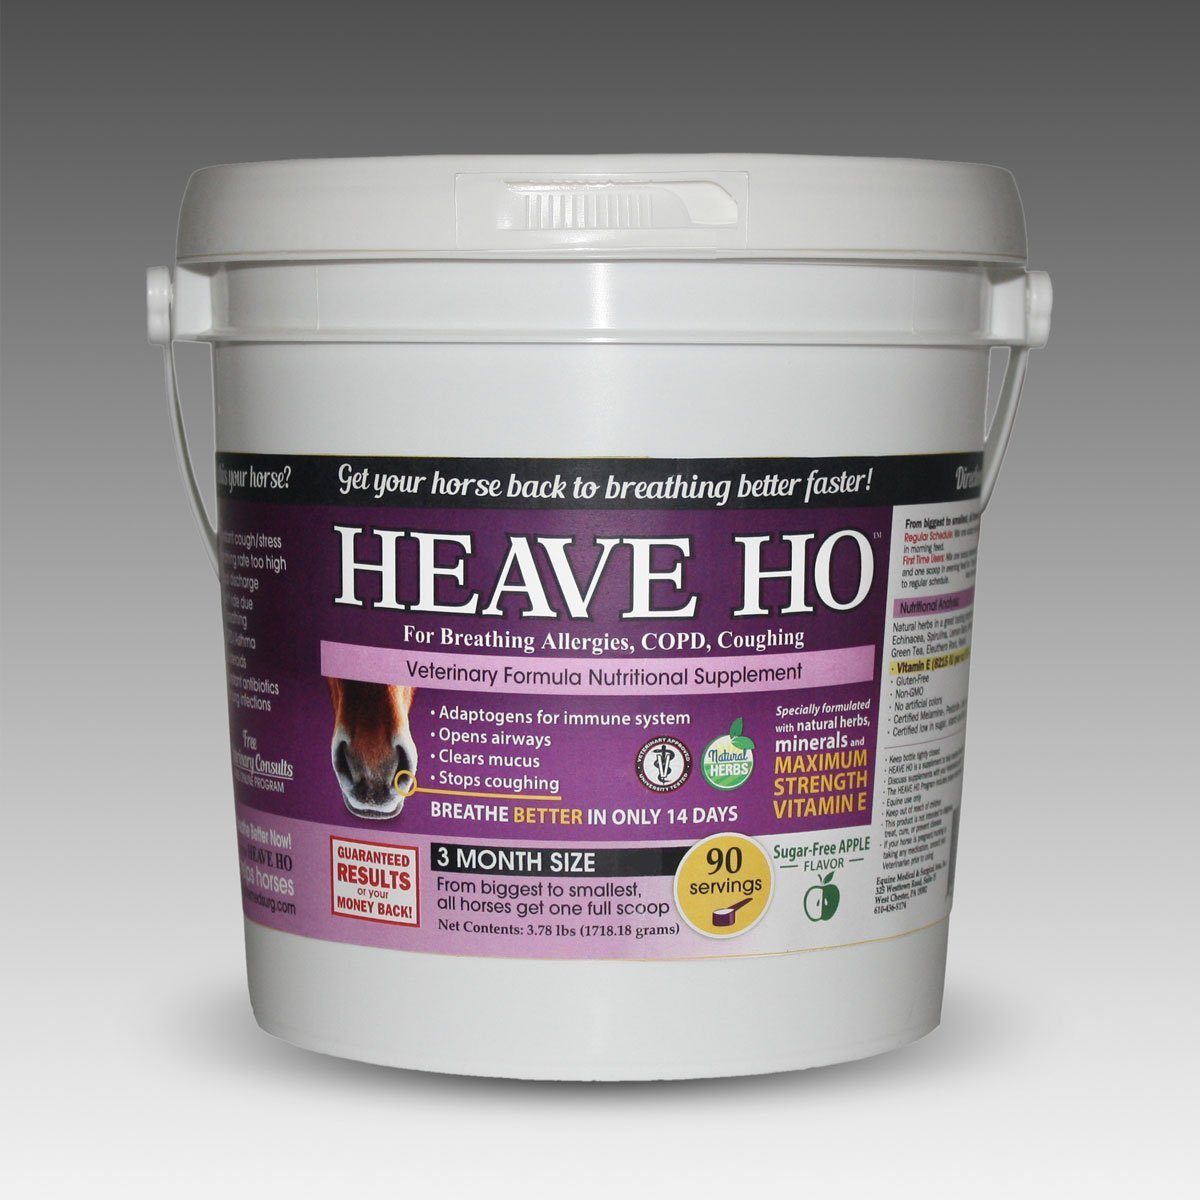 Equine Horse Heave Ho for Heaves, Chronically Allergic Airway, COPD, Asthma Flavor: Apple